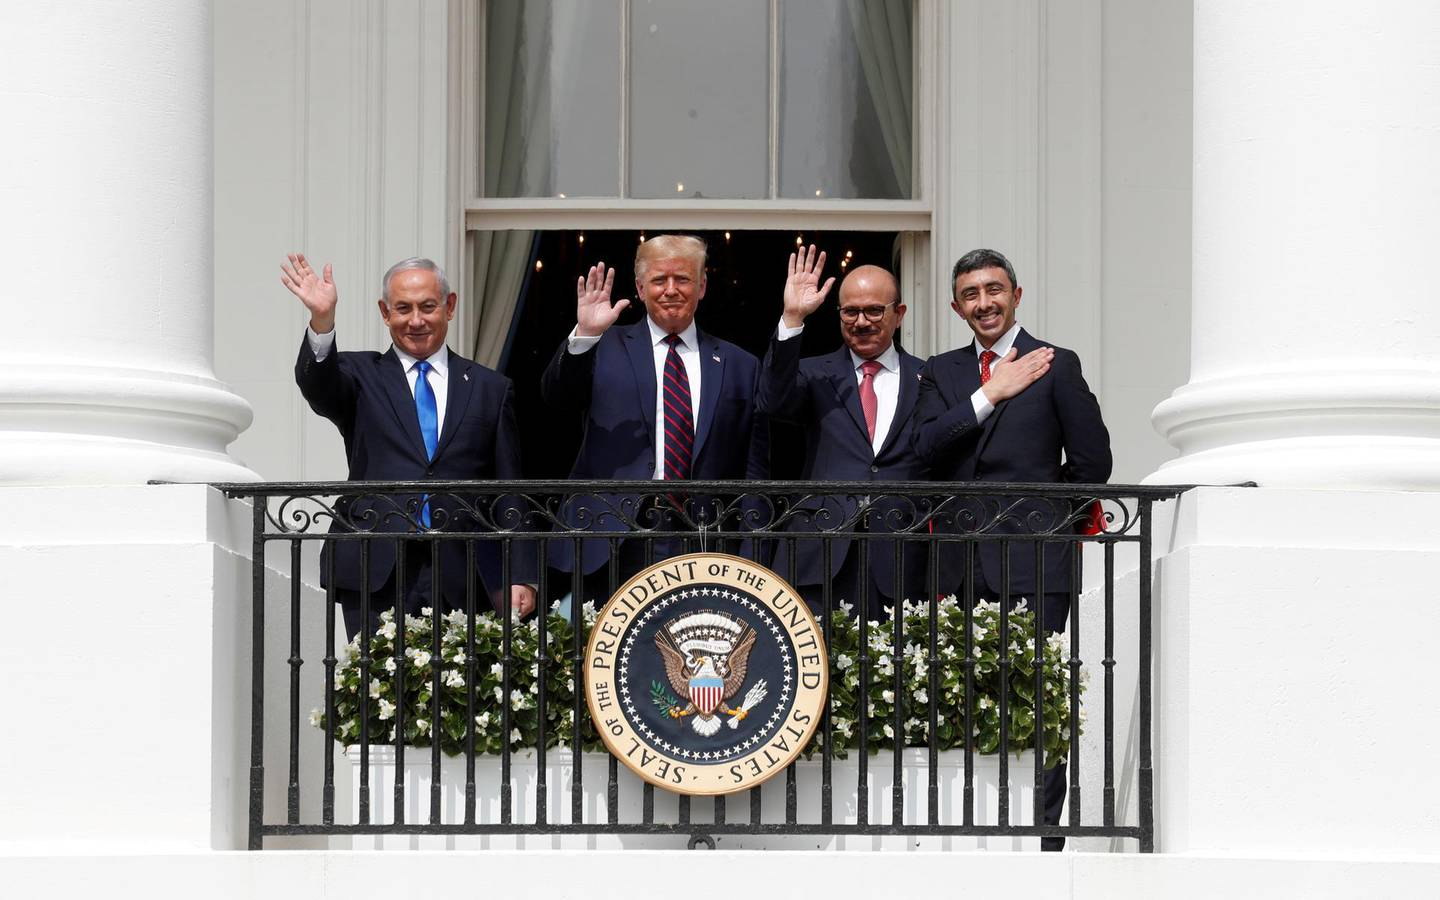 FILE PHOTO: Israel's Prime Minister Benjamin Netanyahu, U.S. President Donald Trump, Bahrain's Foreign Minister Abdullatif Al Zayani and United Arab Emirates (UAE) Foreign Minister Abdullah bin Zayed wave from the White House balcony after a signing ceremony for the Abraham Accords, normalizing relations between Israel and some of its Middle East neighbors, in a strategic realignment of Middle Eastern countries against Iran, on the South Lawn of the White House in Washington, U.S., September 15, 2020. REUTERS/Tom Brenner/File Photo